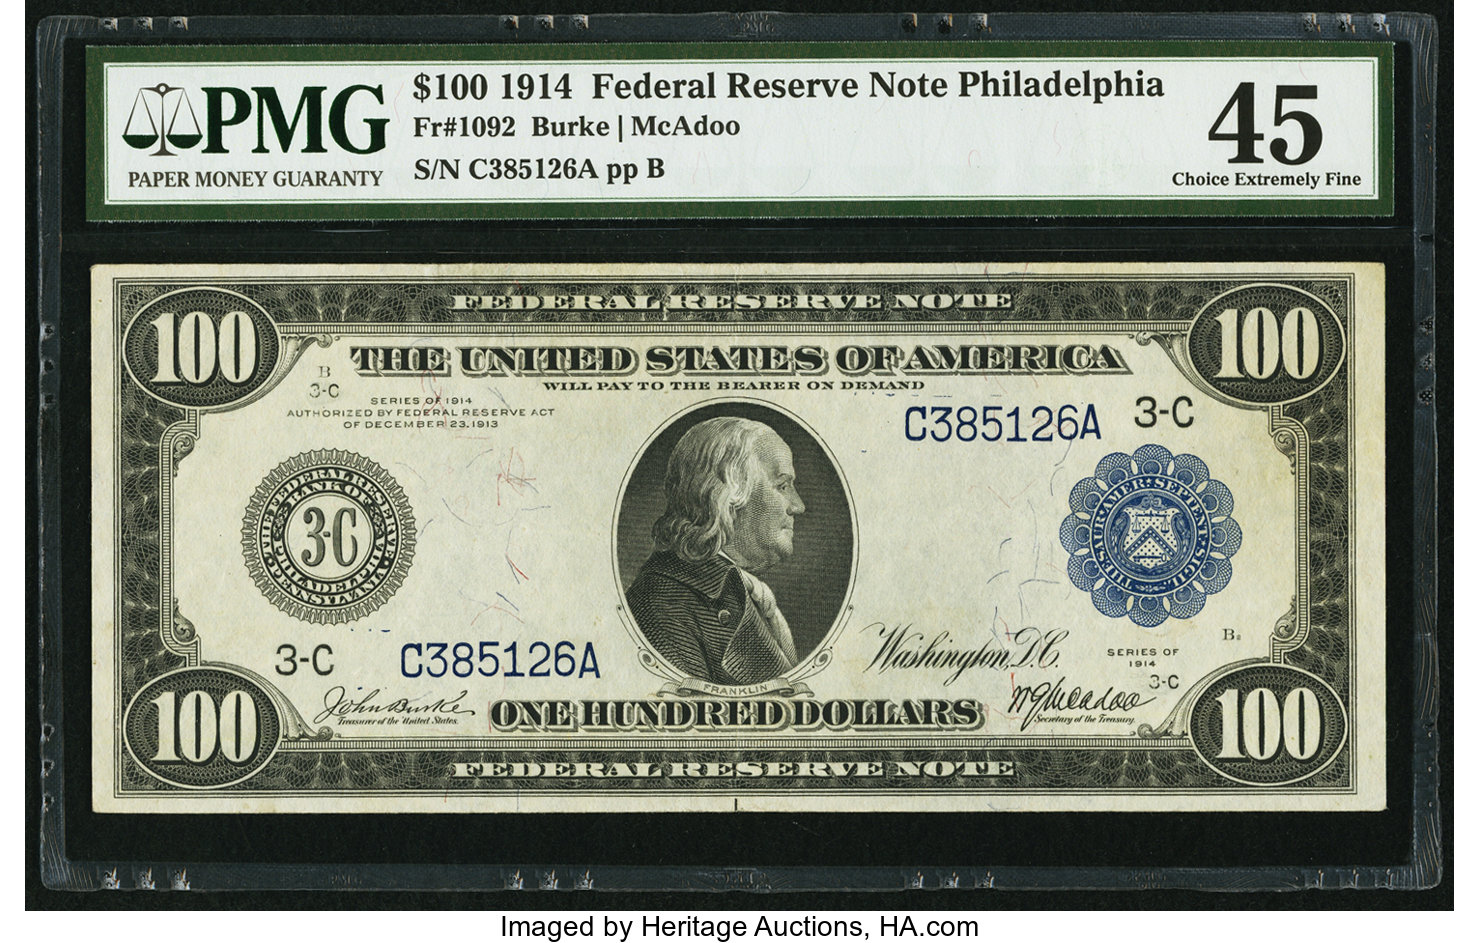 sample image for Fr.1092 $100 Philly